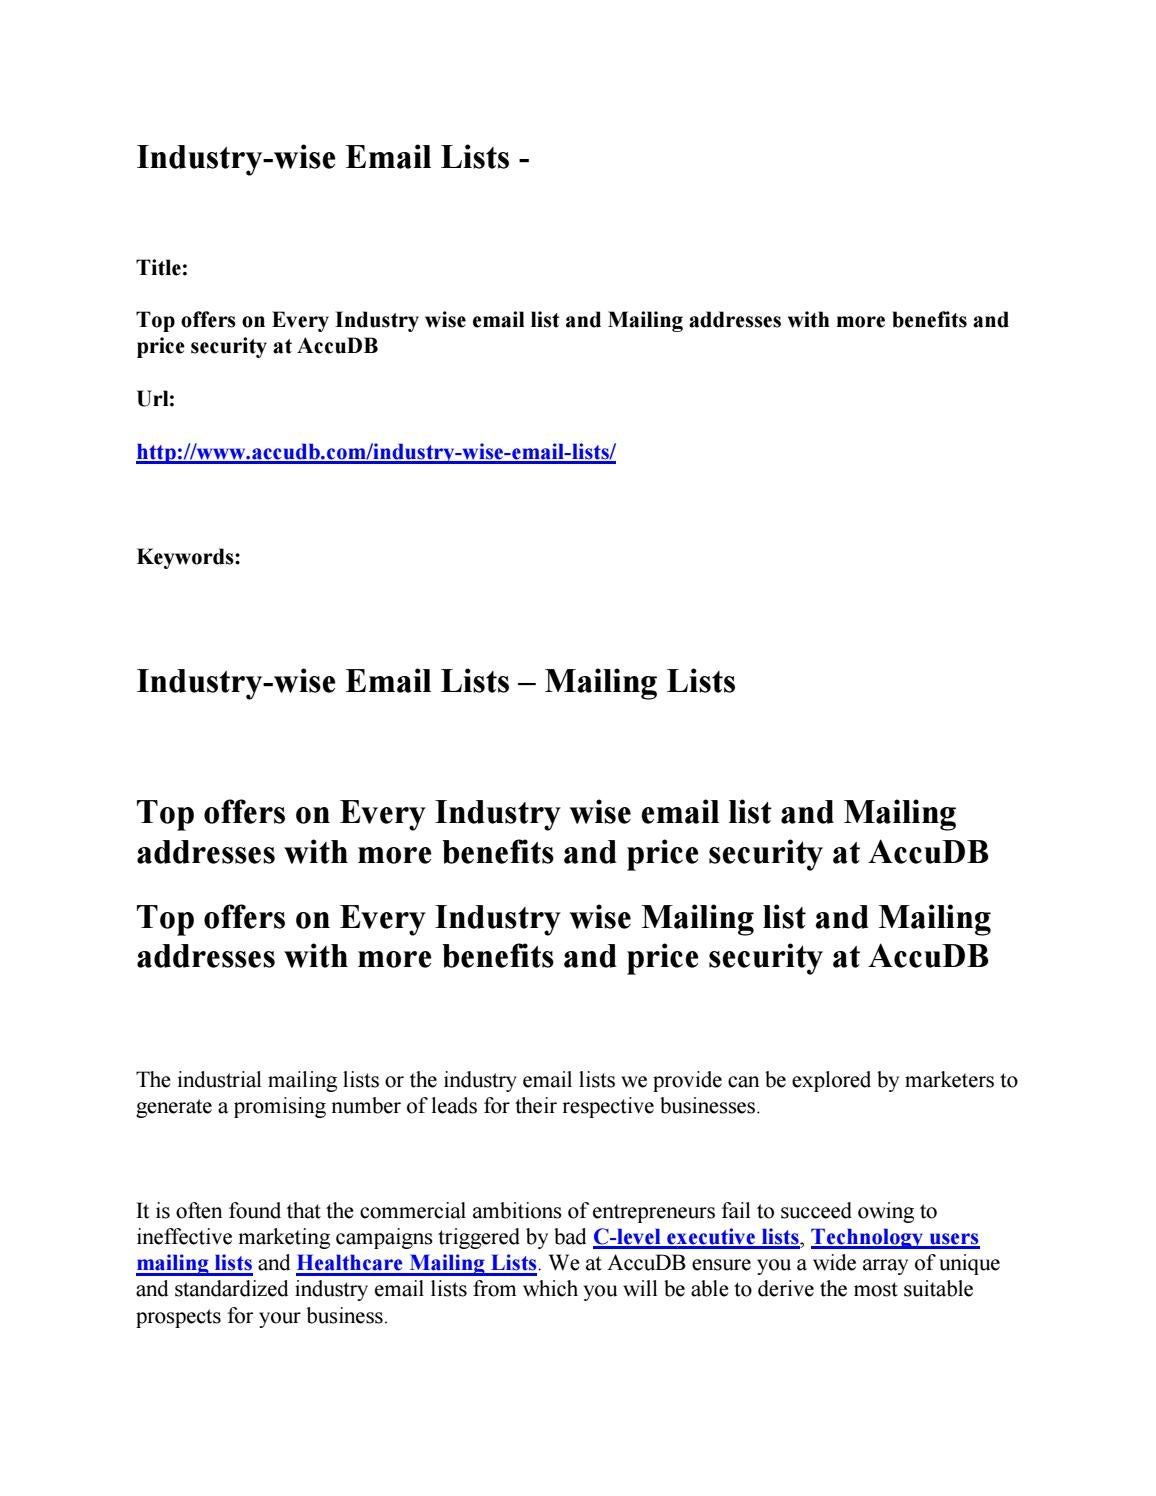 Industry wise mailing lists industry wise email addresses